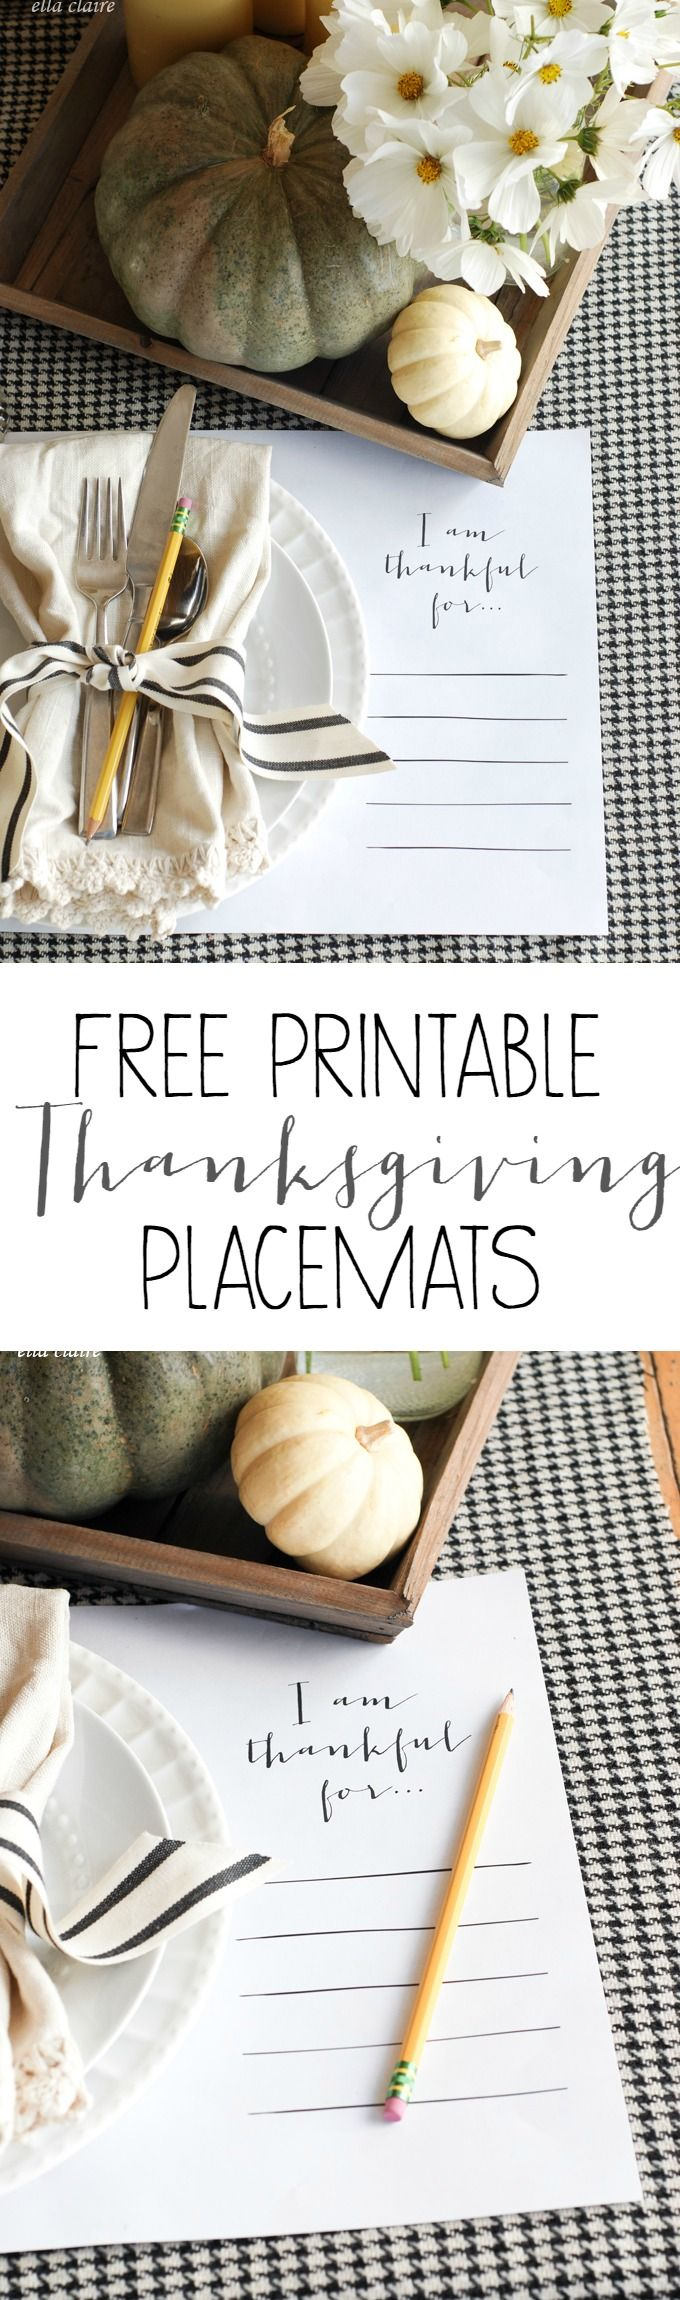 Free Printable 11x17 Thanksgiving Placemats | I am thankful for...